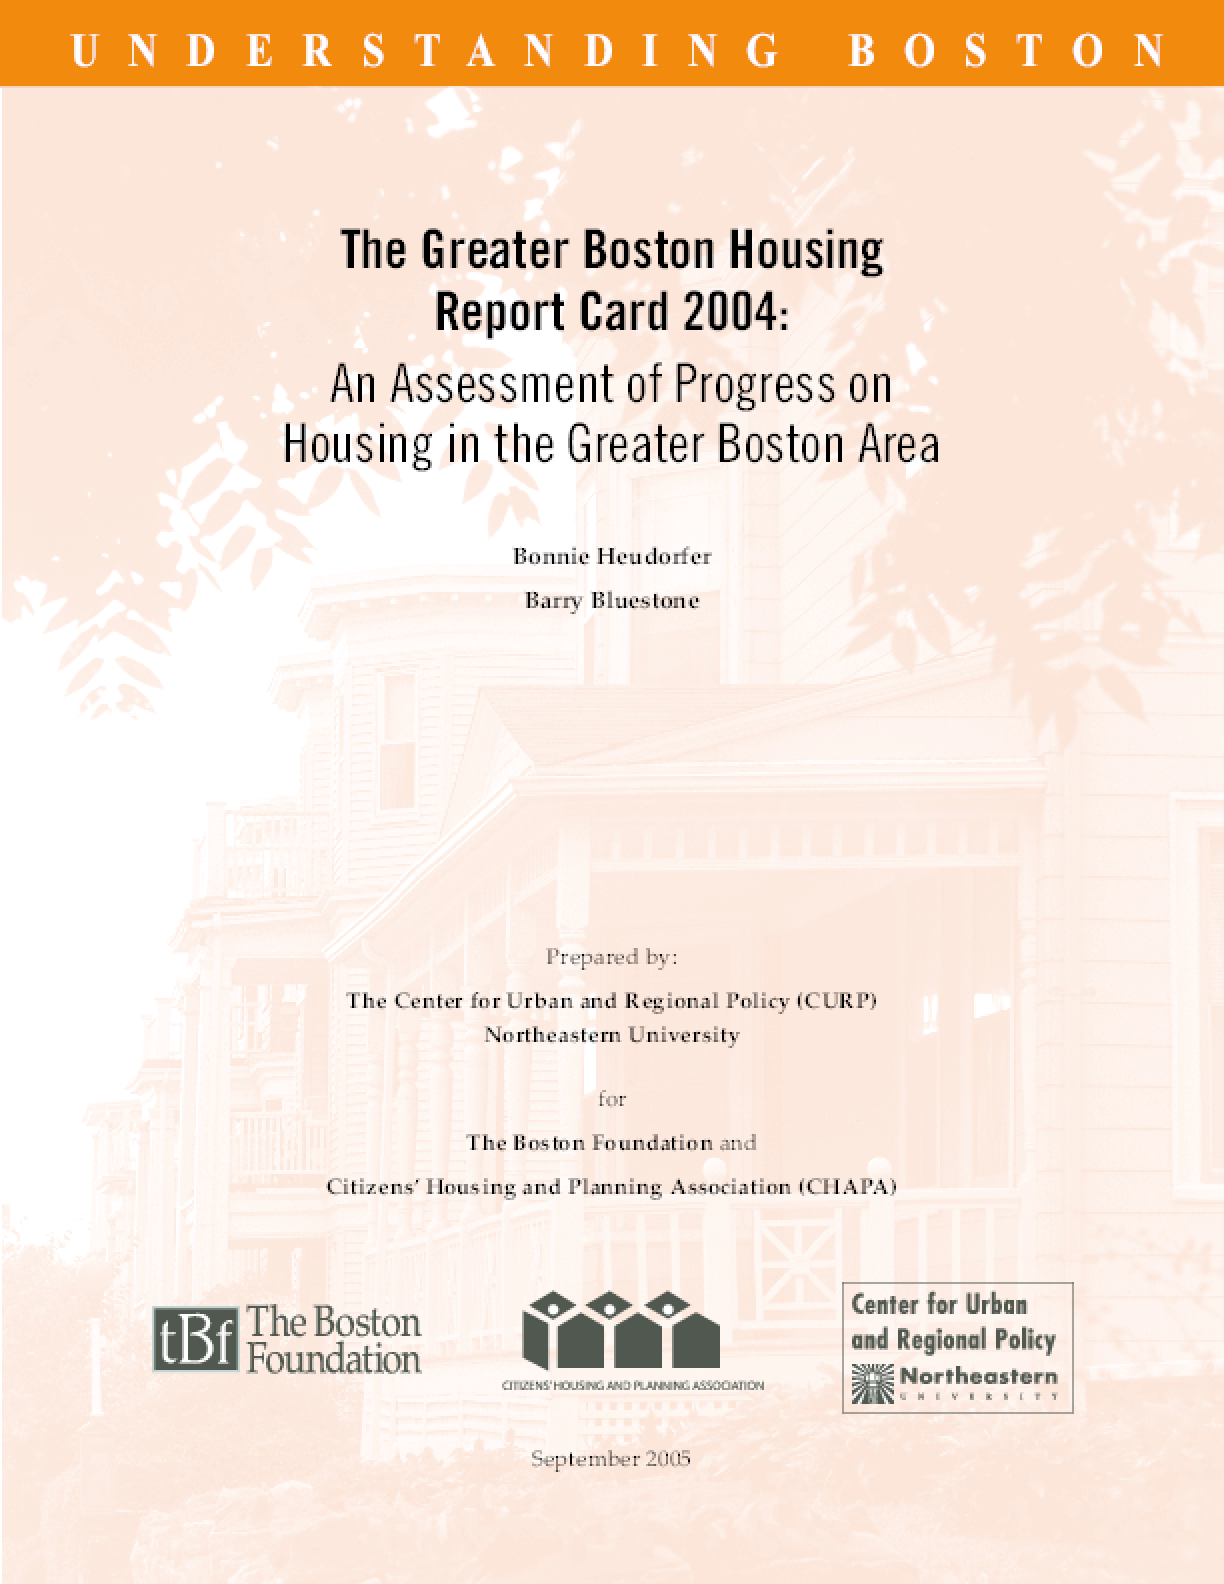 The Greater Boston Housing Report Card 2004: An Assessment of Progress on Housing in the Greater Boston Area